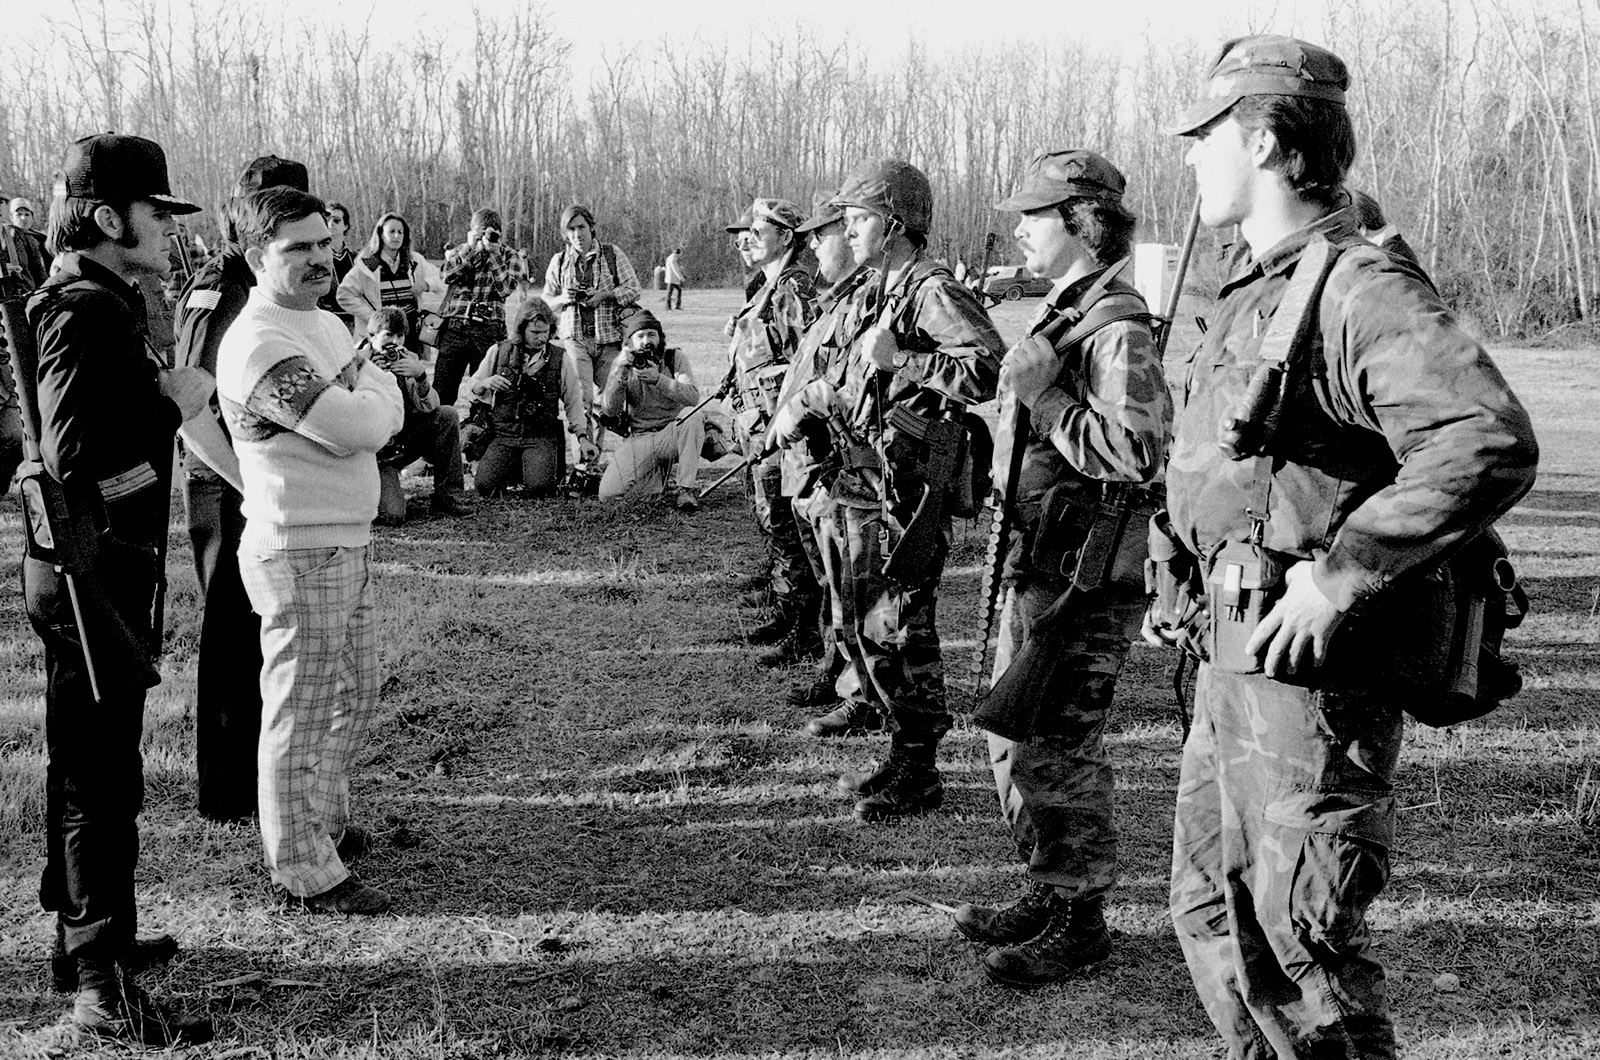 Louis Beam, the Grand Dragon of the Texas Knights of the Ku Klux Klan, inspecting his security forces before a rally against Vietnamese immigrant fishermen along the Gulf Coast, Santa Fe, Texas, 1981